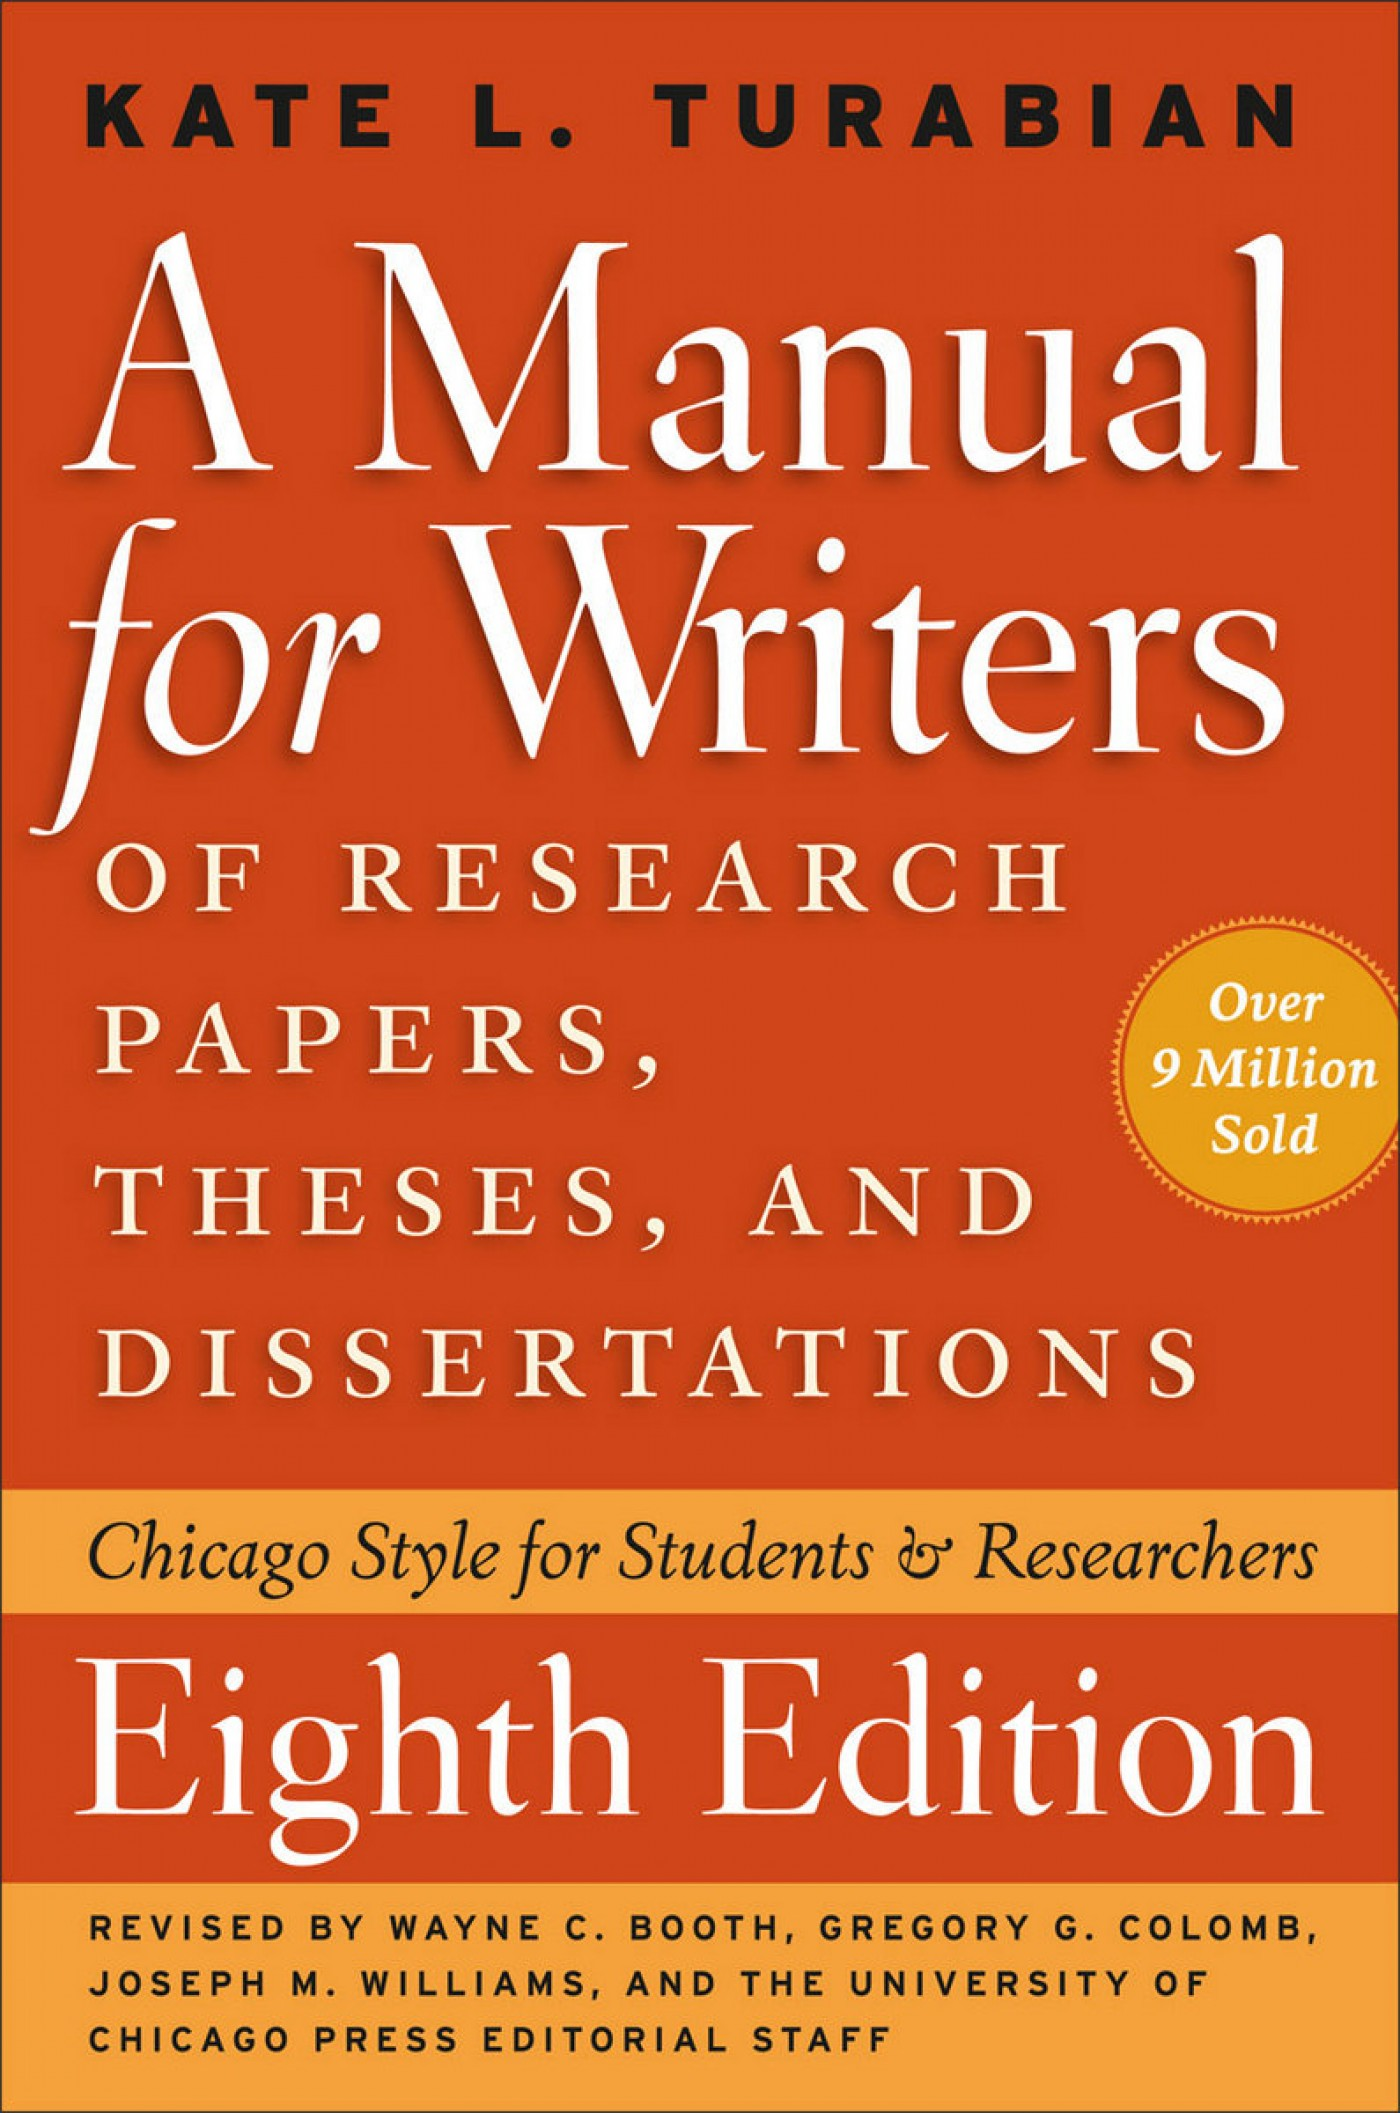 003 Research Paper Frontcover Manual For Writers Of Papers Theses And Dissertations Amazing A Turabian Pdf 1400